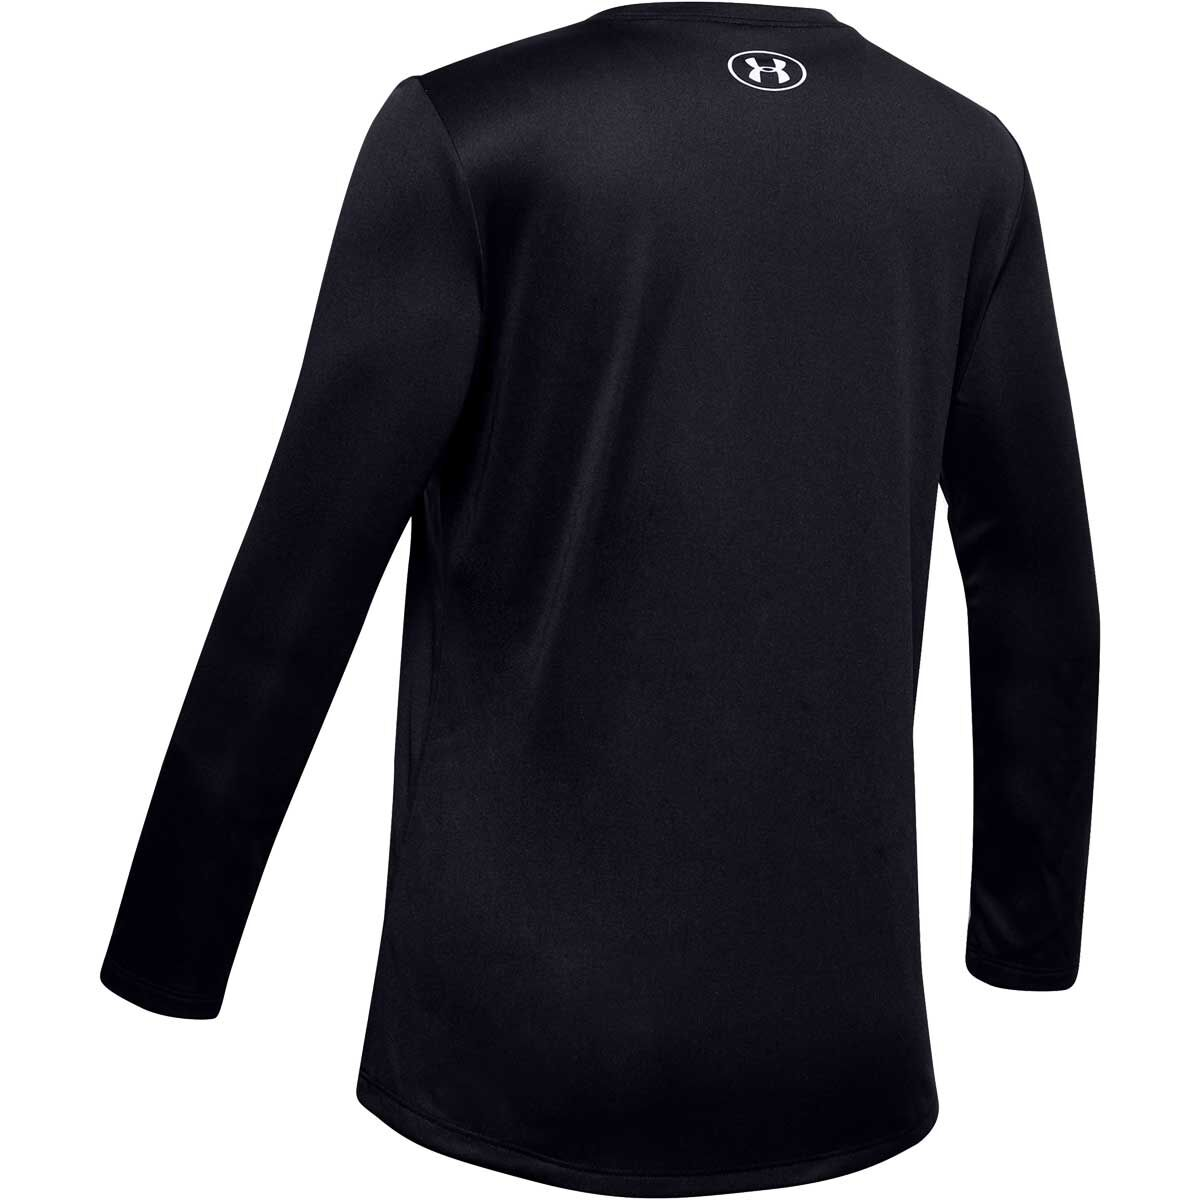 NWT Under Armour GIRL/'S Power in Pink Medium Large Long Sleeve Top